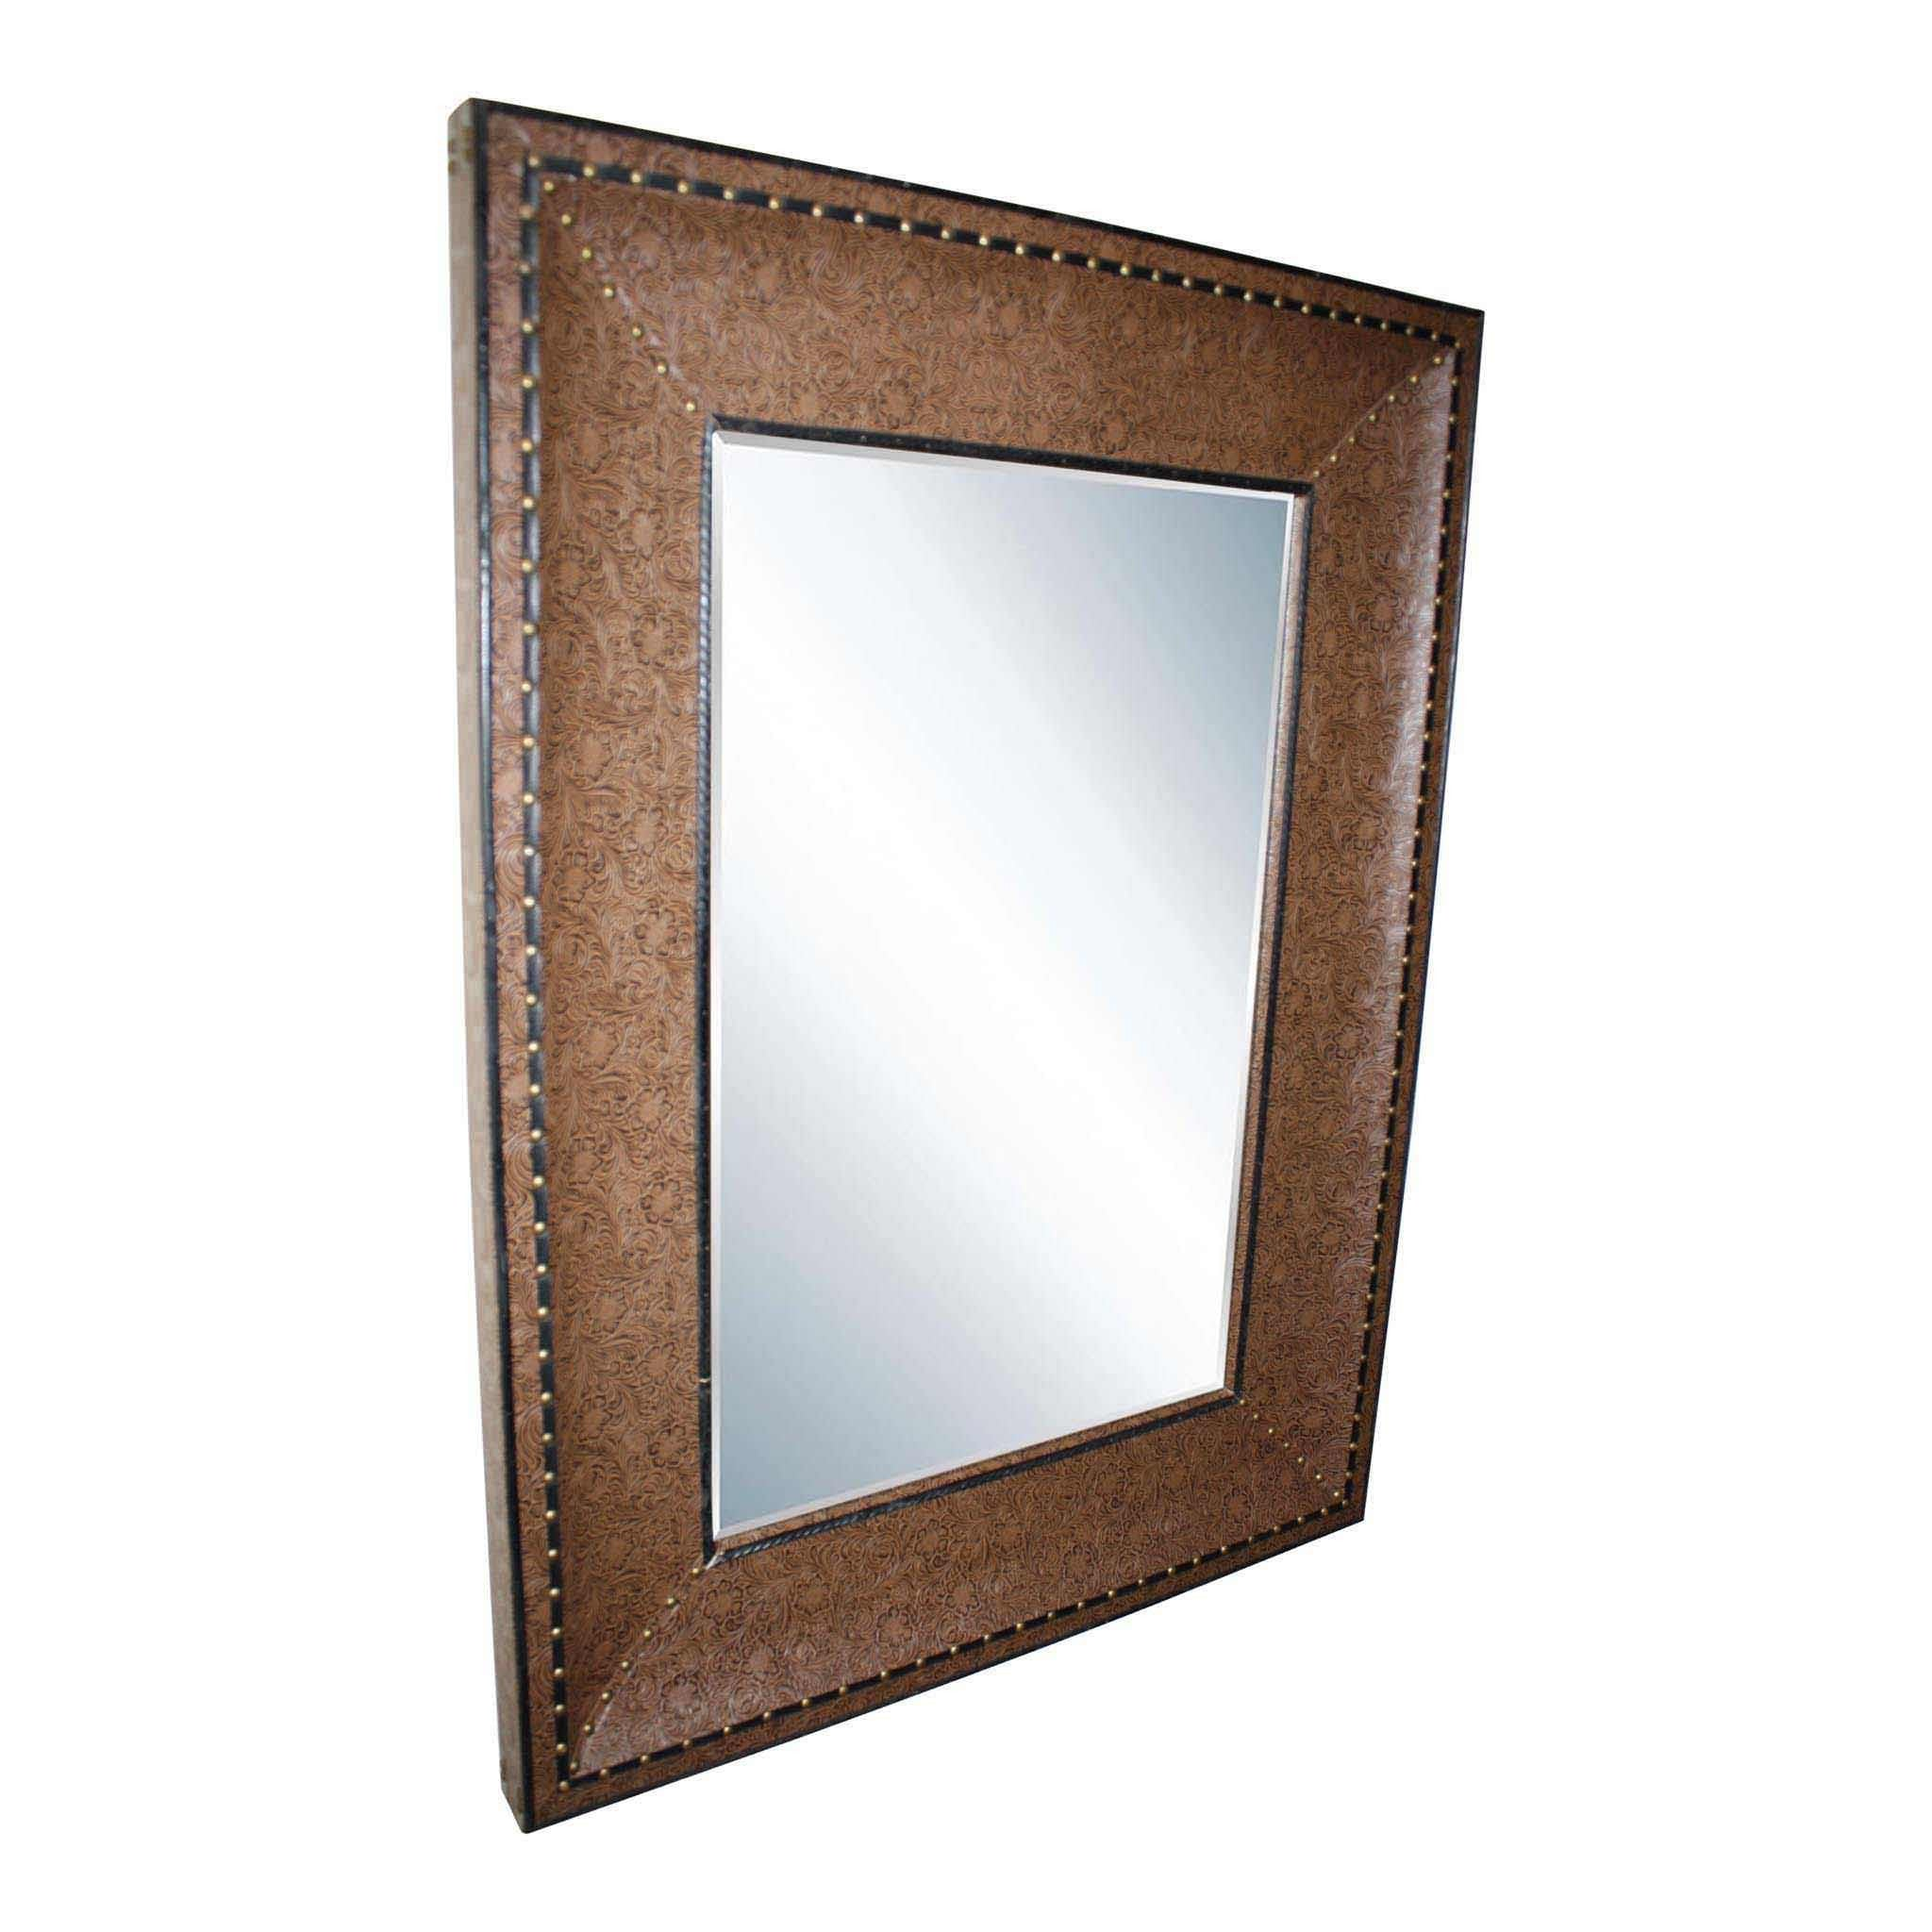 Mirror with Embossed Brown Leather Frame